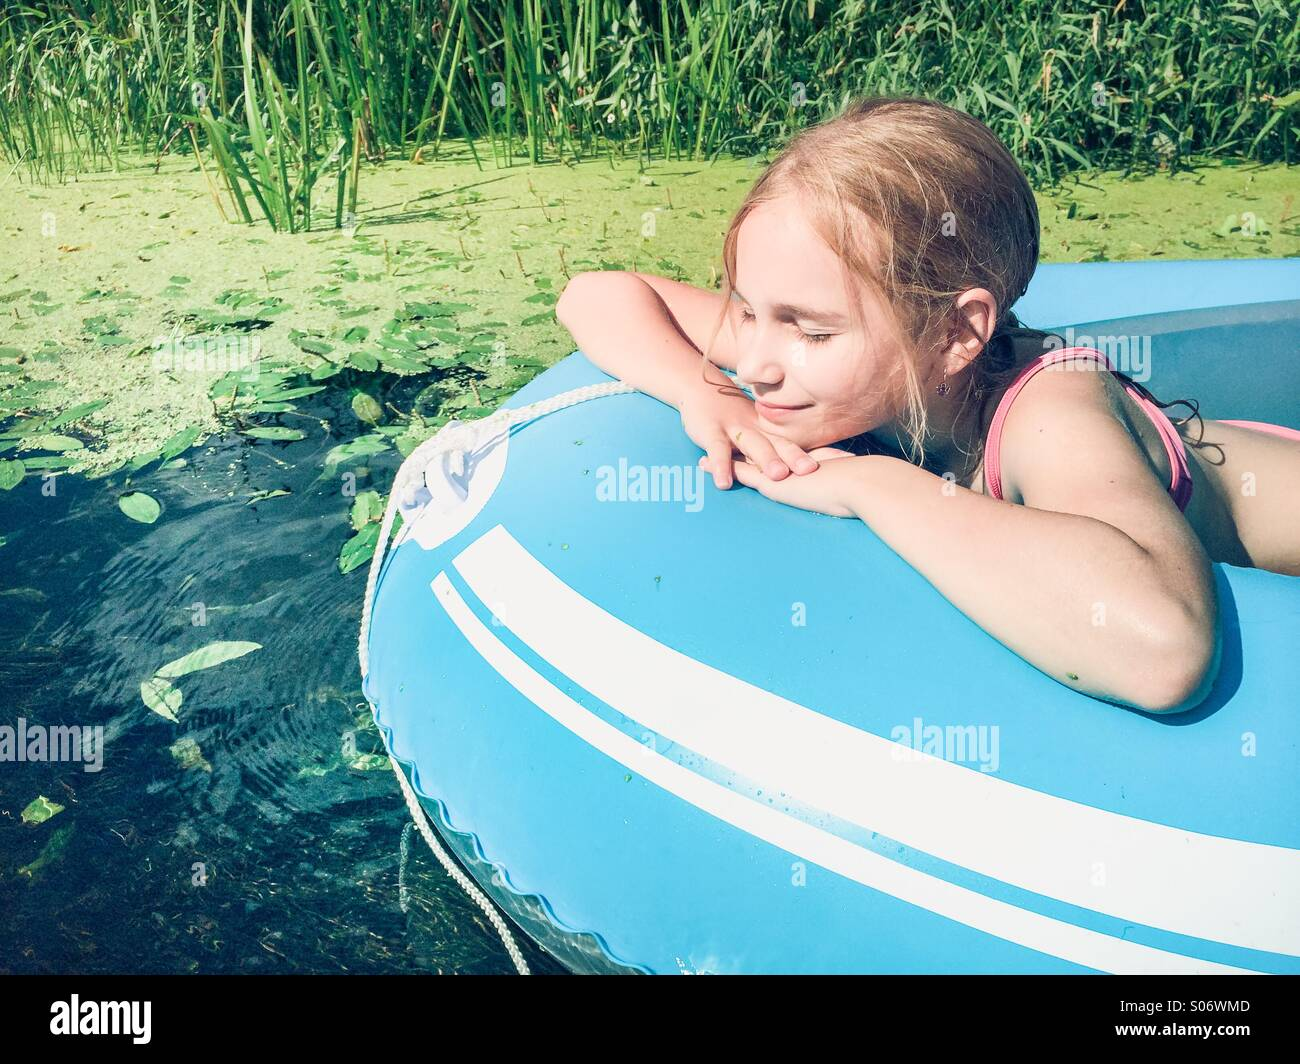 Little girl sitting in a raft on a river with lush greenery - Stock Image